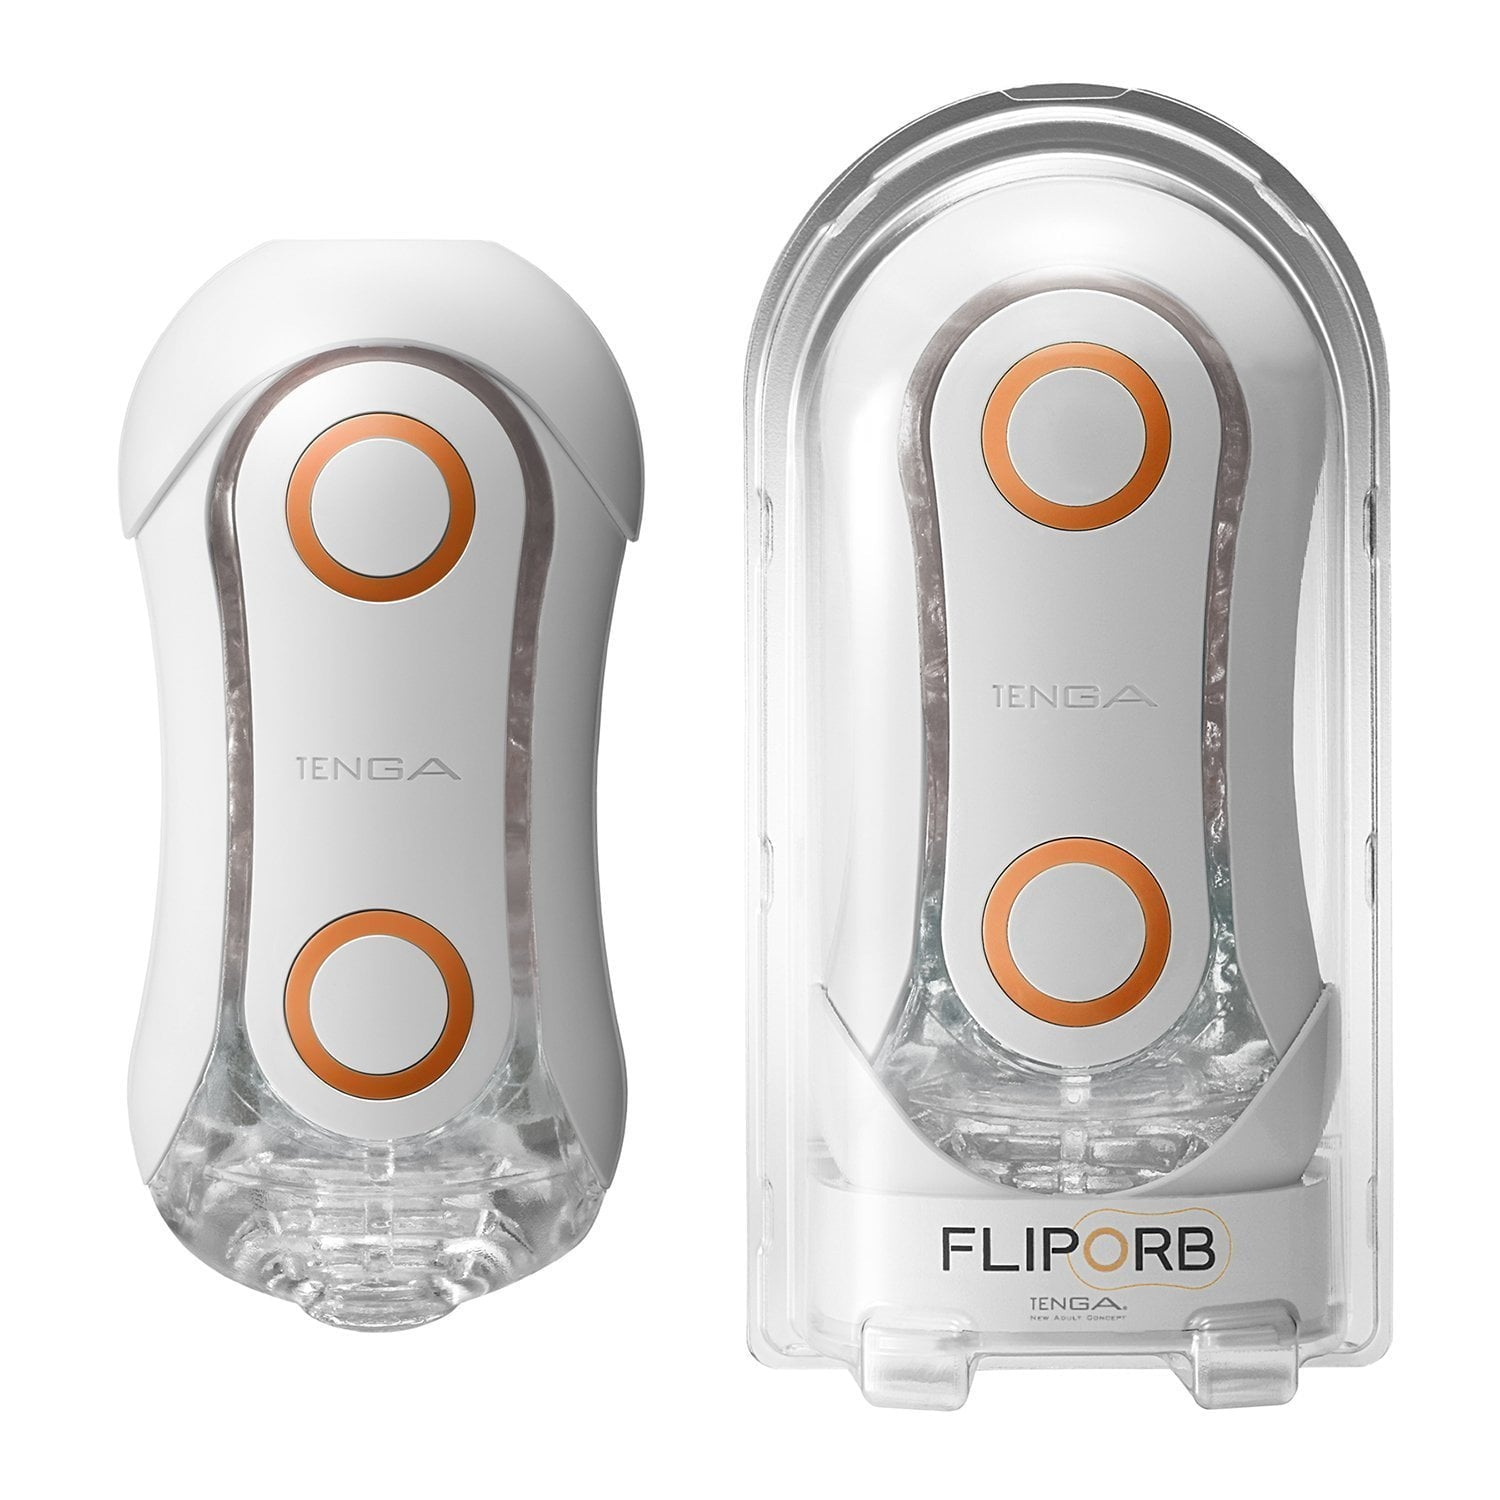 Tenga - Flip ORB Orange Crush Masturbator (Orange) Masturbator Soft Stroker (Non Vibration)